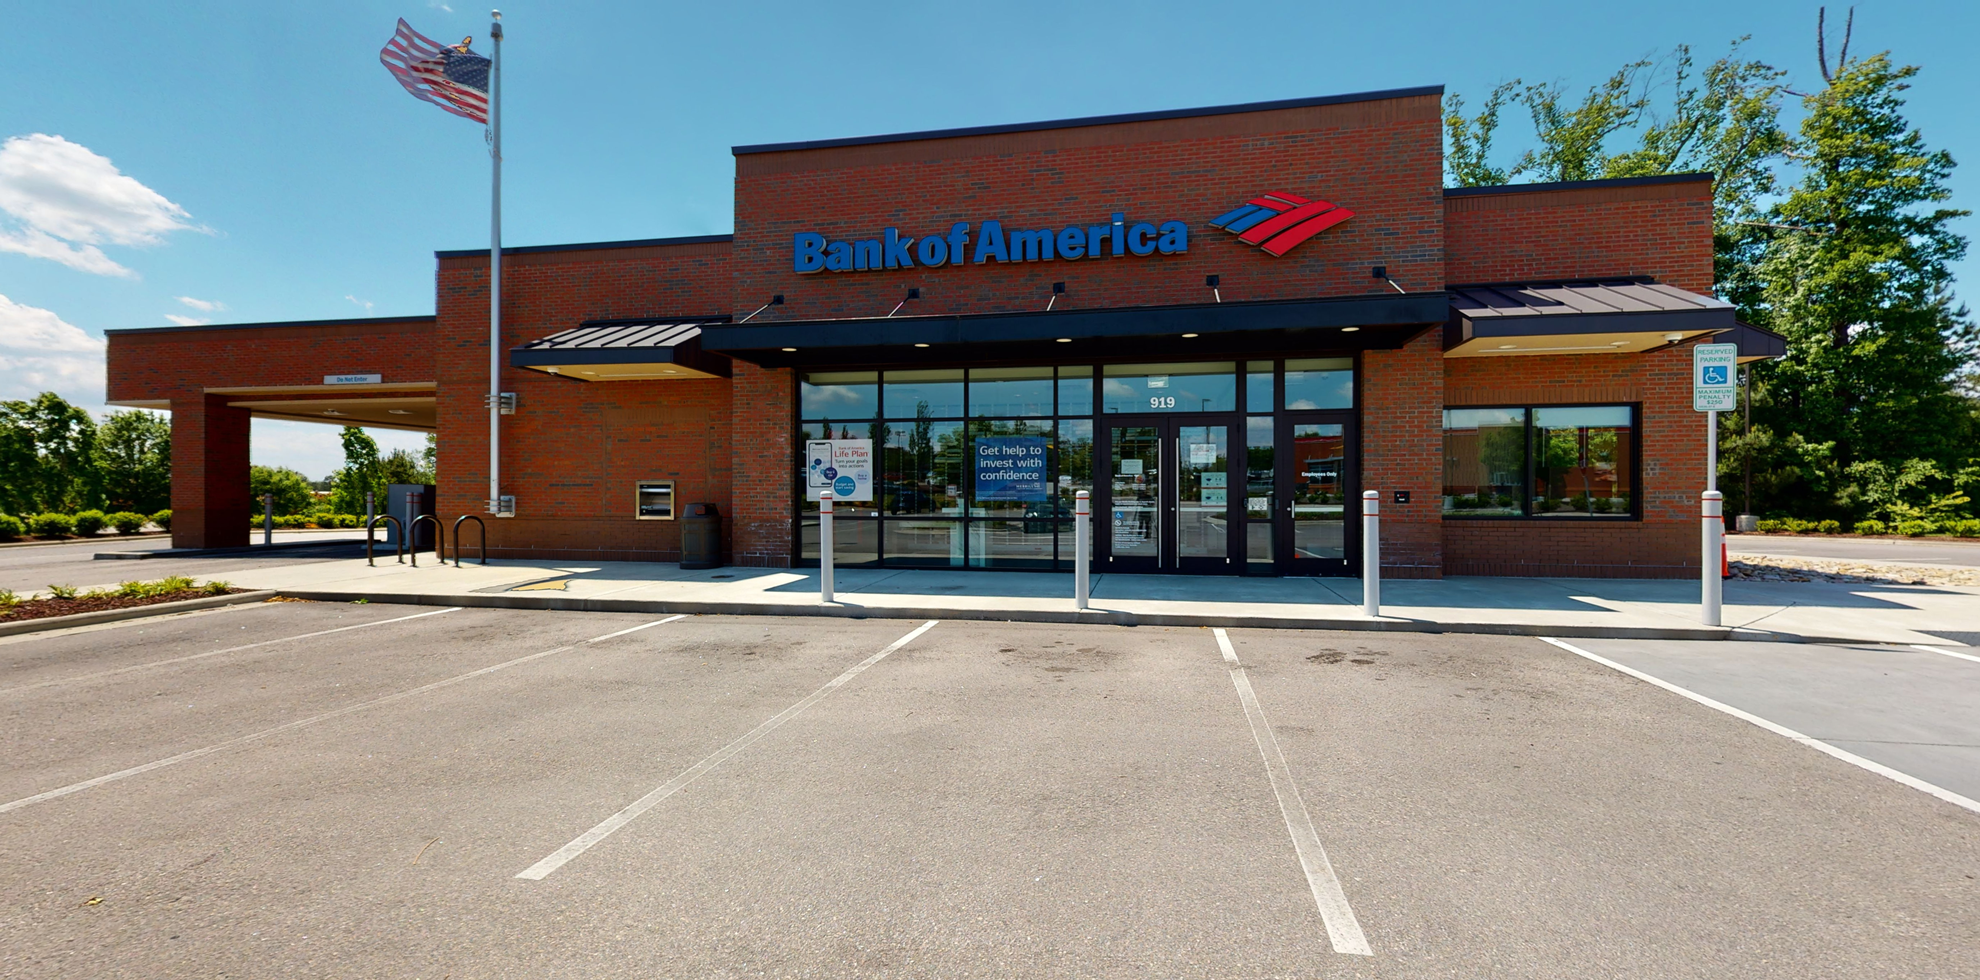 Bank of America financial center with drive-thru ATM | 919 Gateway Commons Cir, Wake Forest, NC 27587